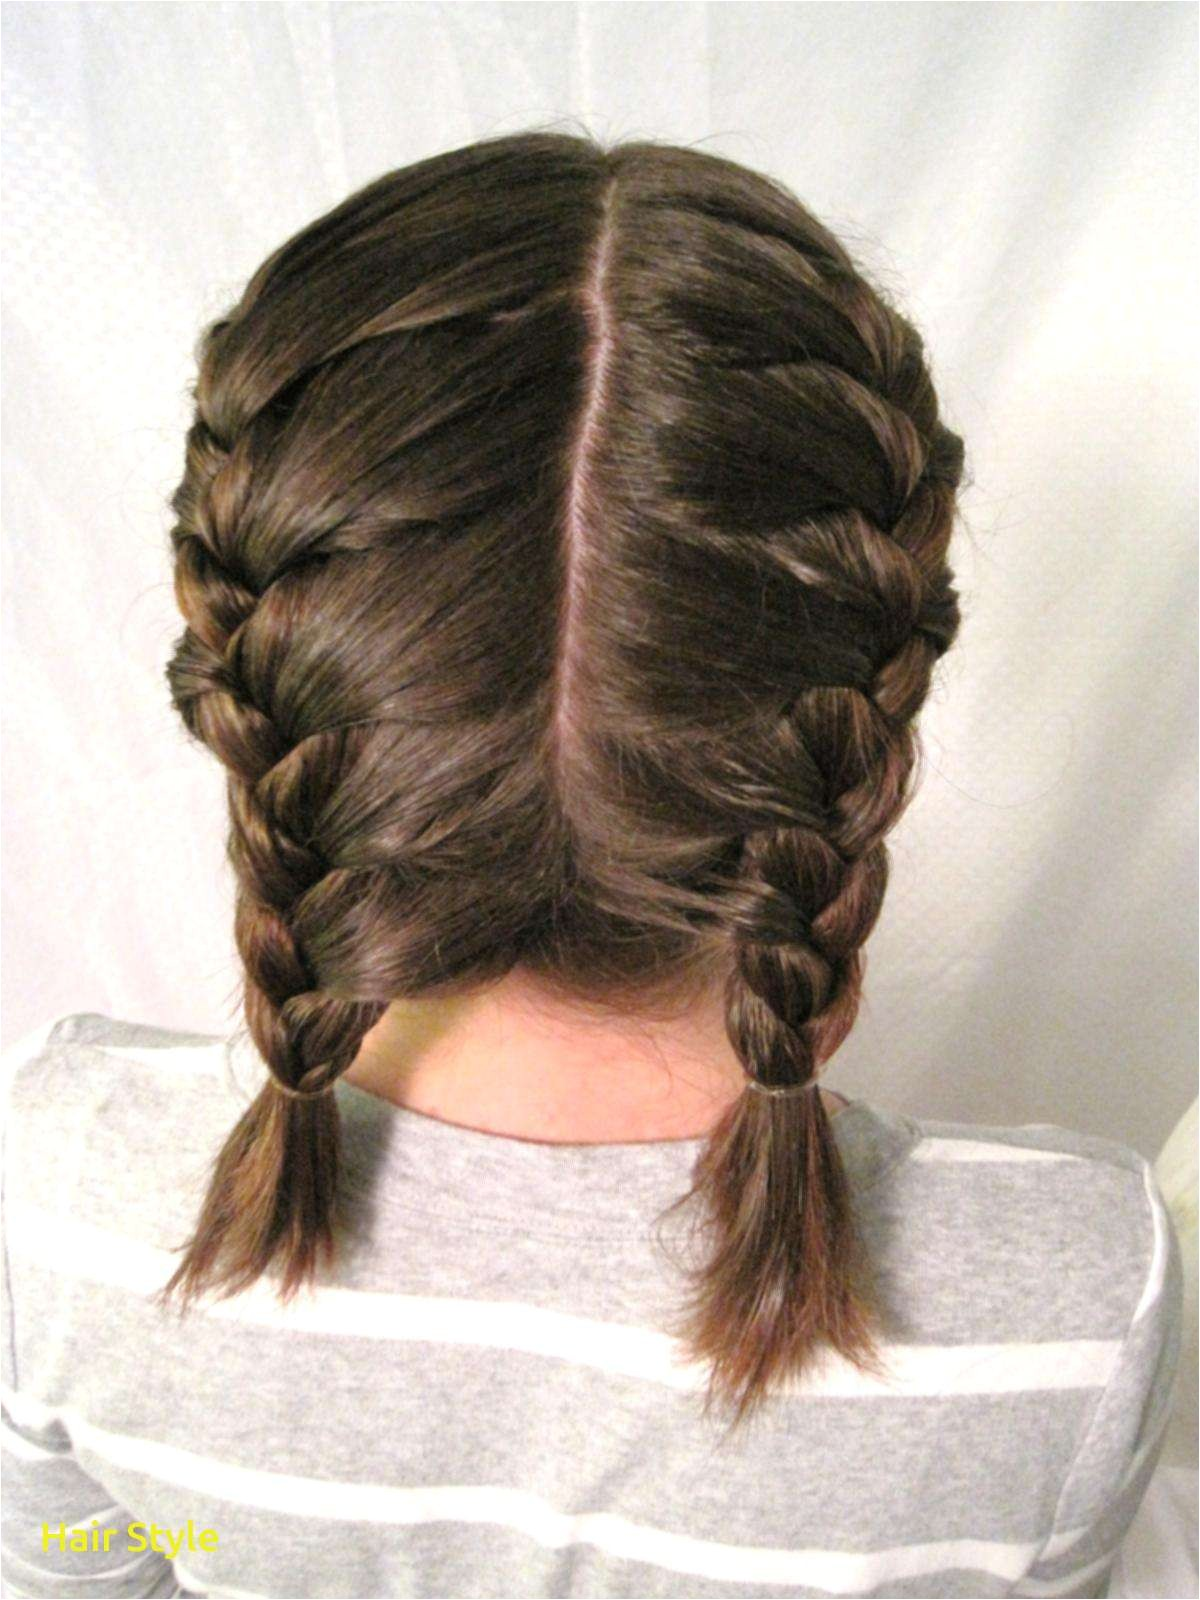 Pigtail Braids Short Hair Awesome Fascinating How to Double French Braid Short Hair U Odmalicka for